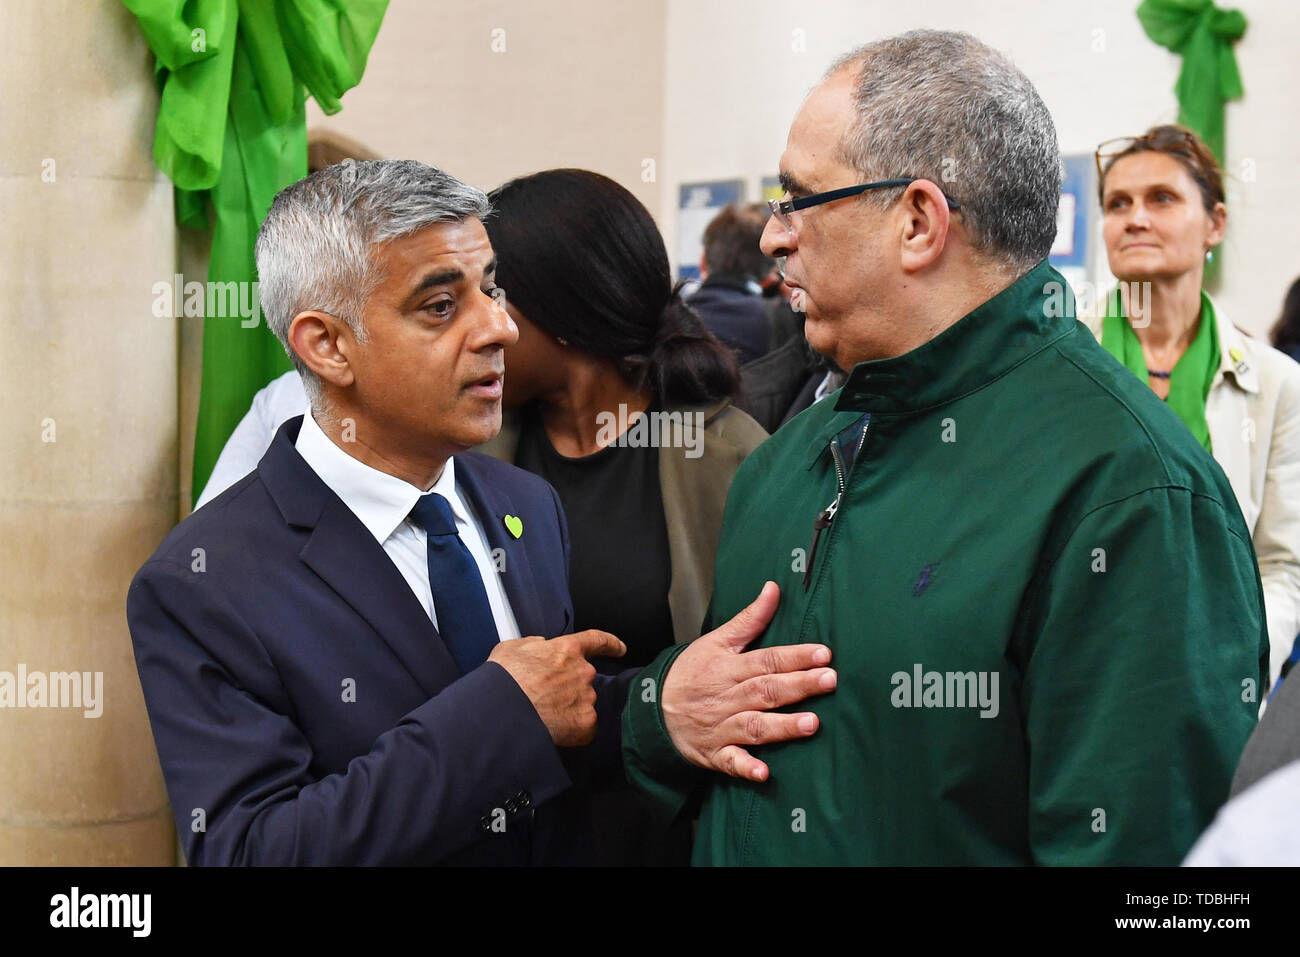 Mayor of London Sadiq Khan attends a service of remembrance at St Helens church, London, to mark the two-year anniversary of the Grenfell Tower block fire. - Stock Image